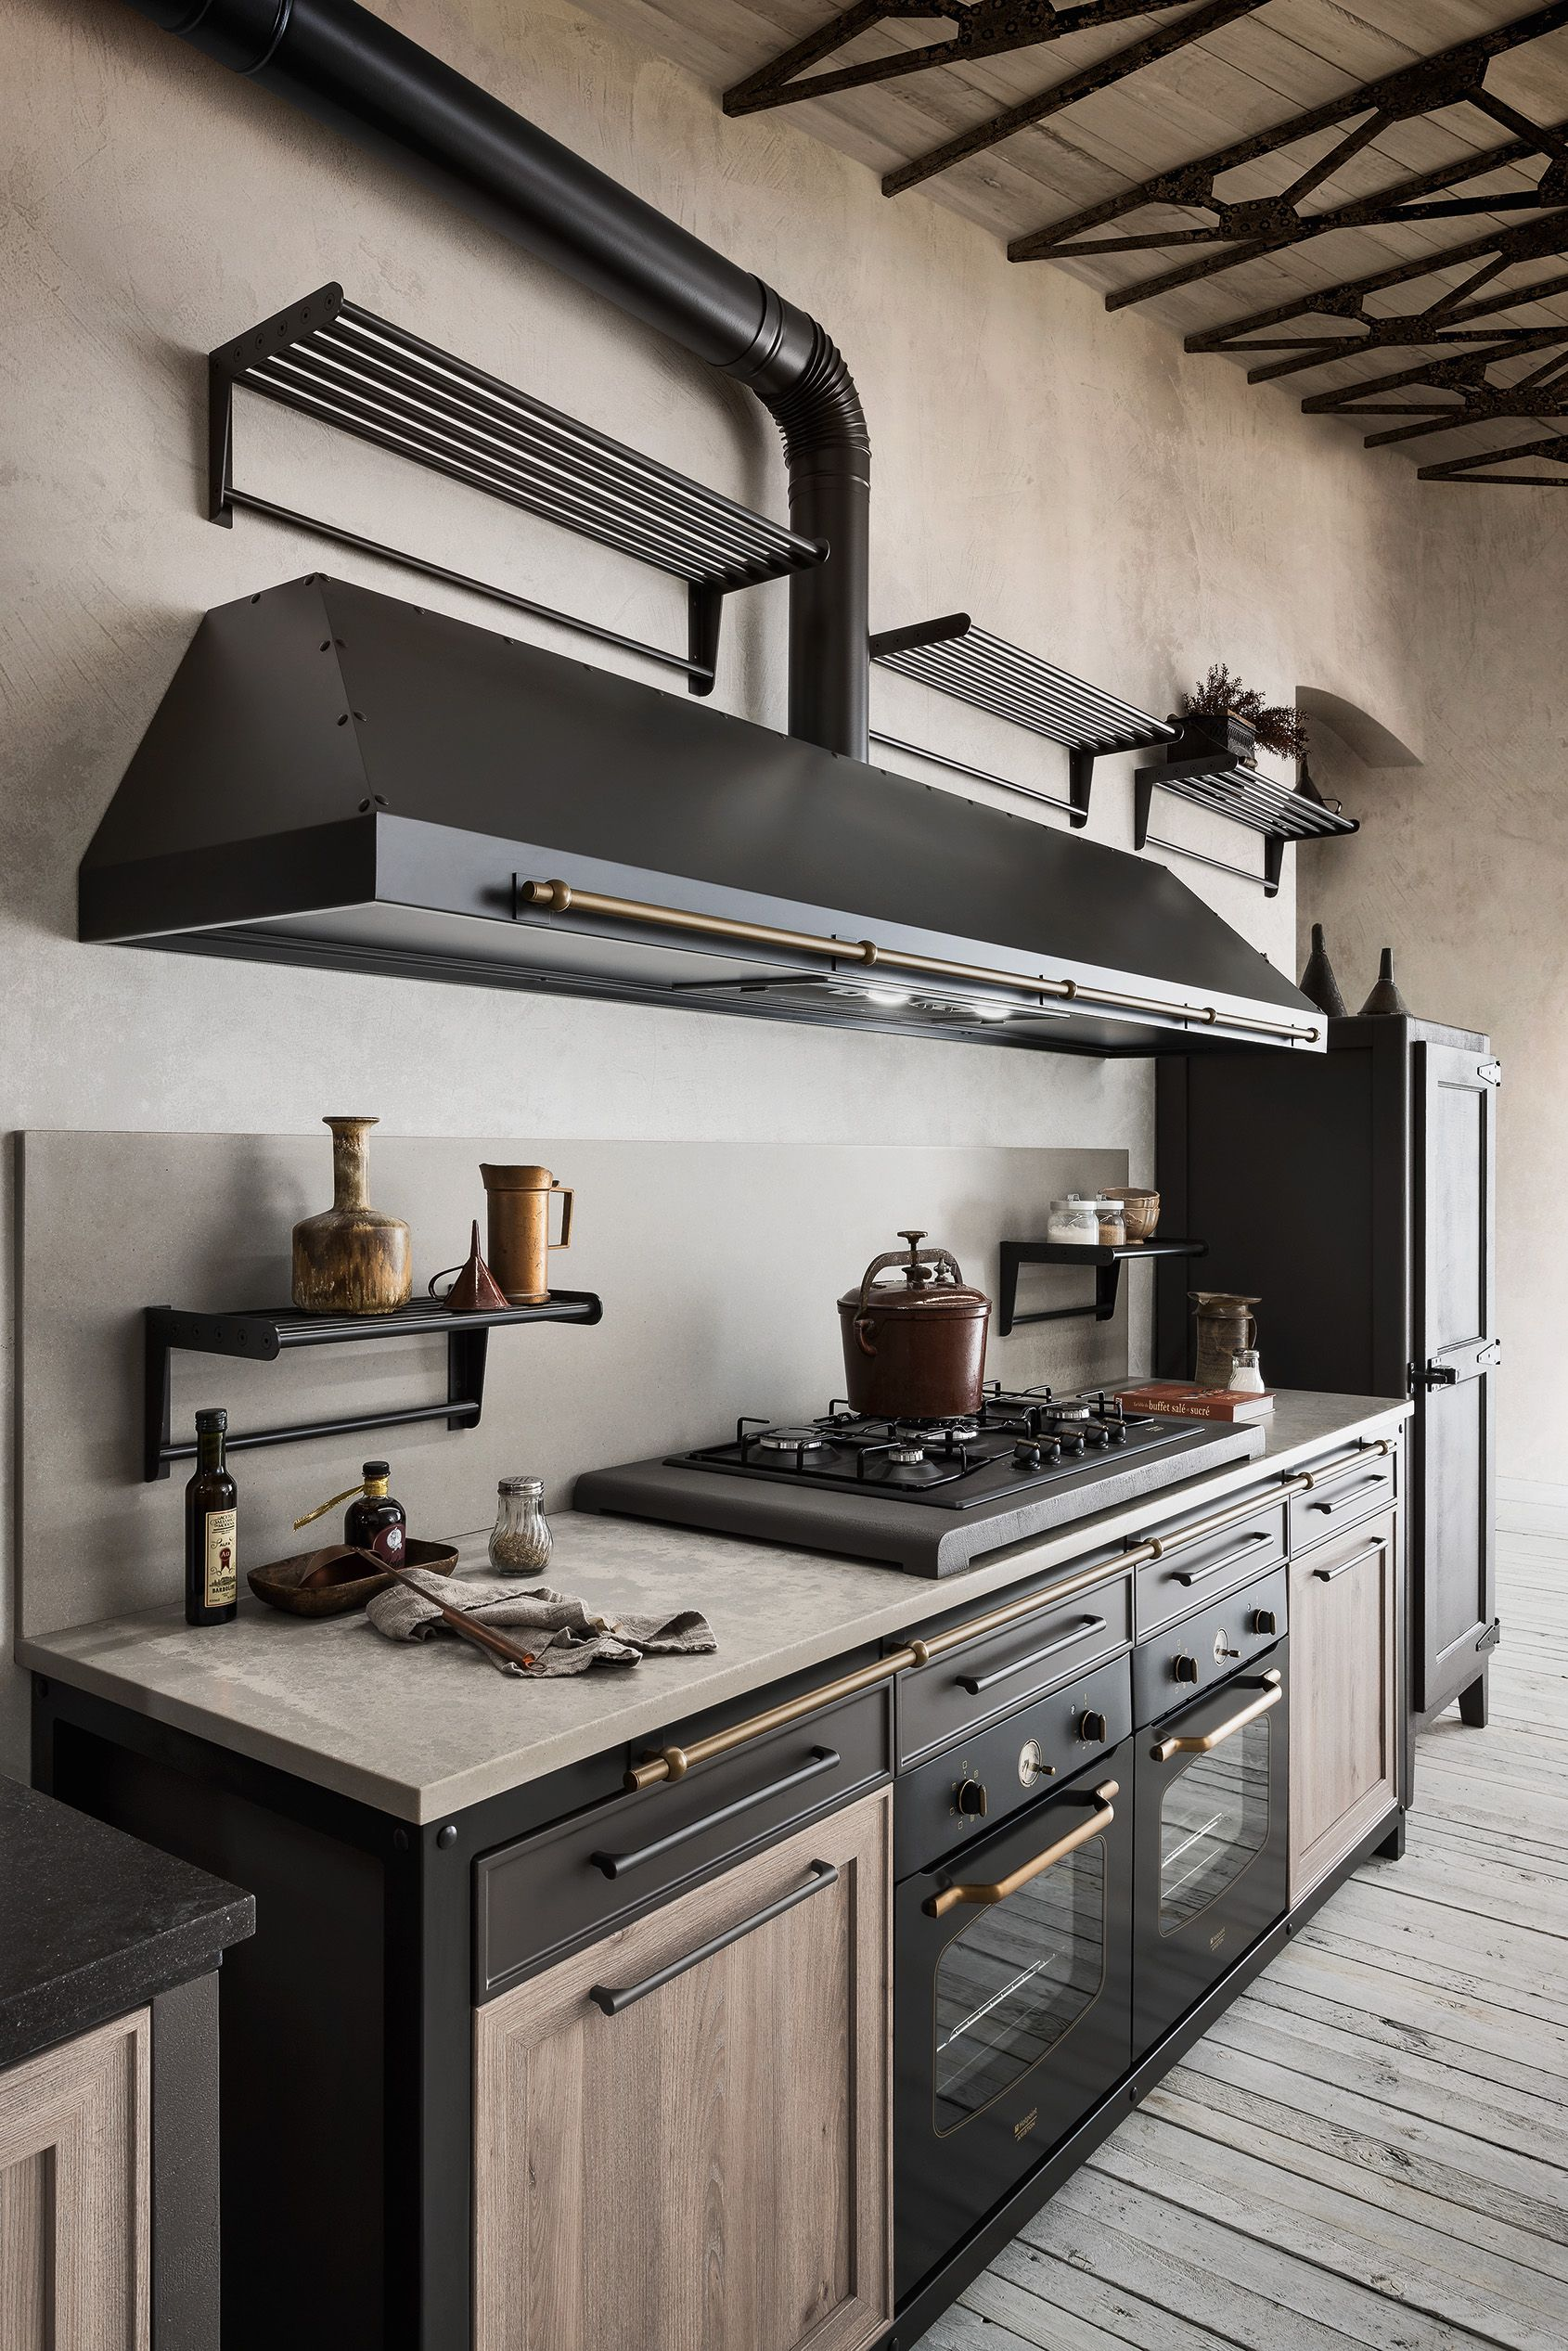 Ar-Tre | Cucine & Cucine | kitchen | Pinterest | Kitchens ...